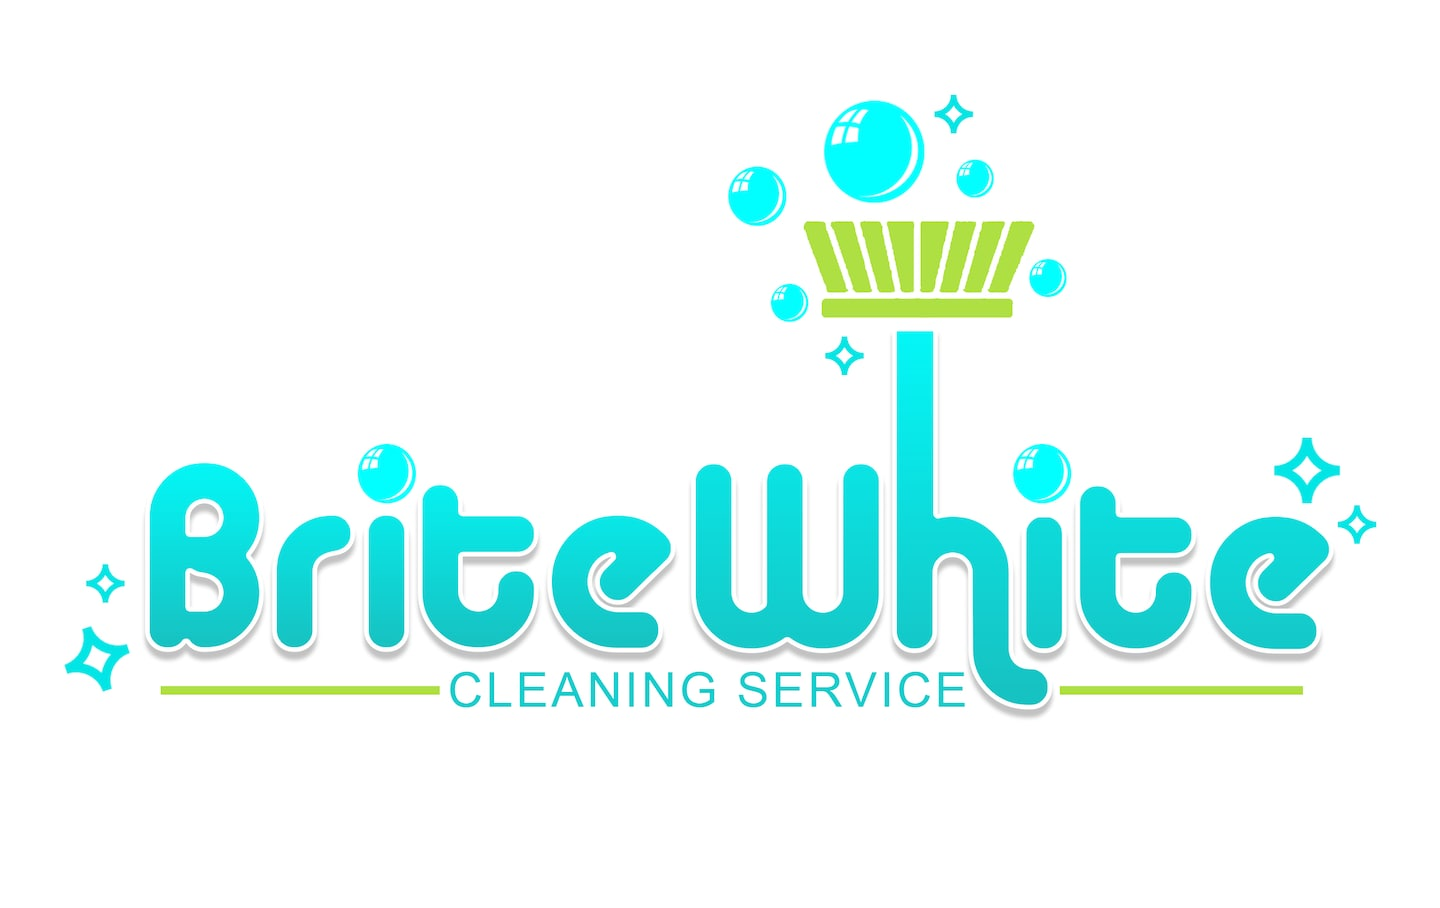 Brite White Cleaning Service